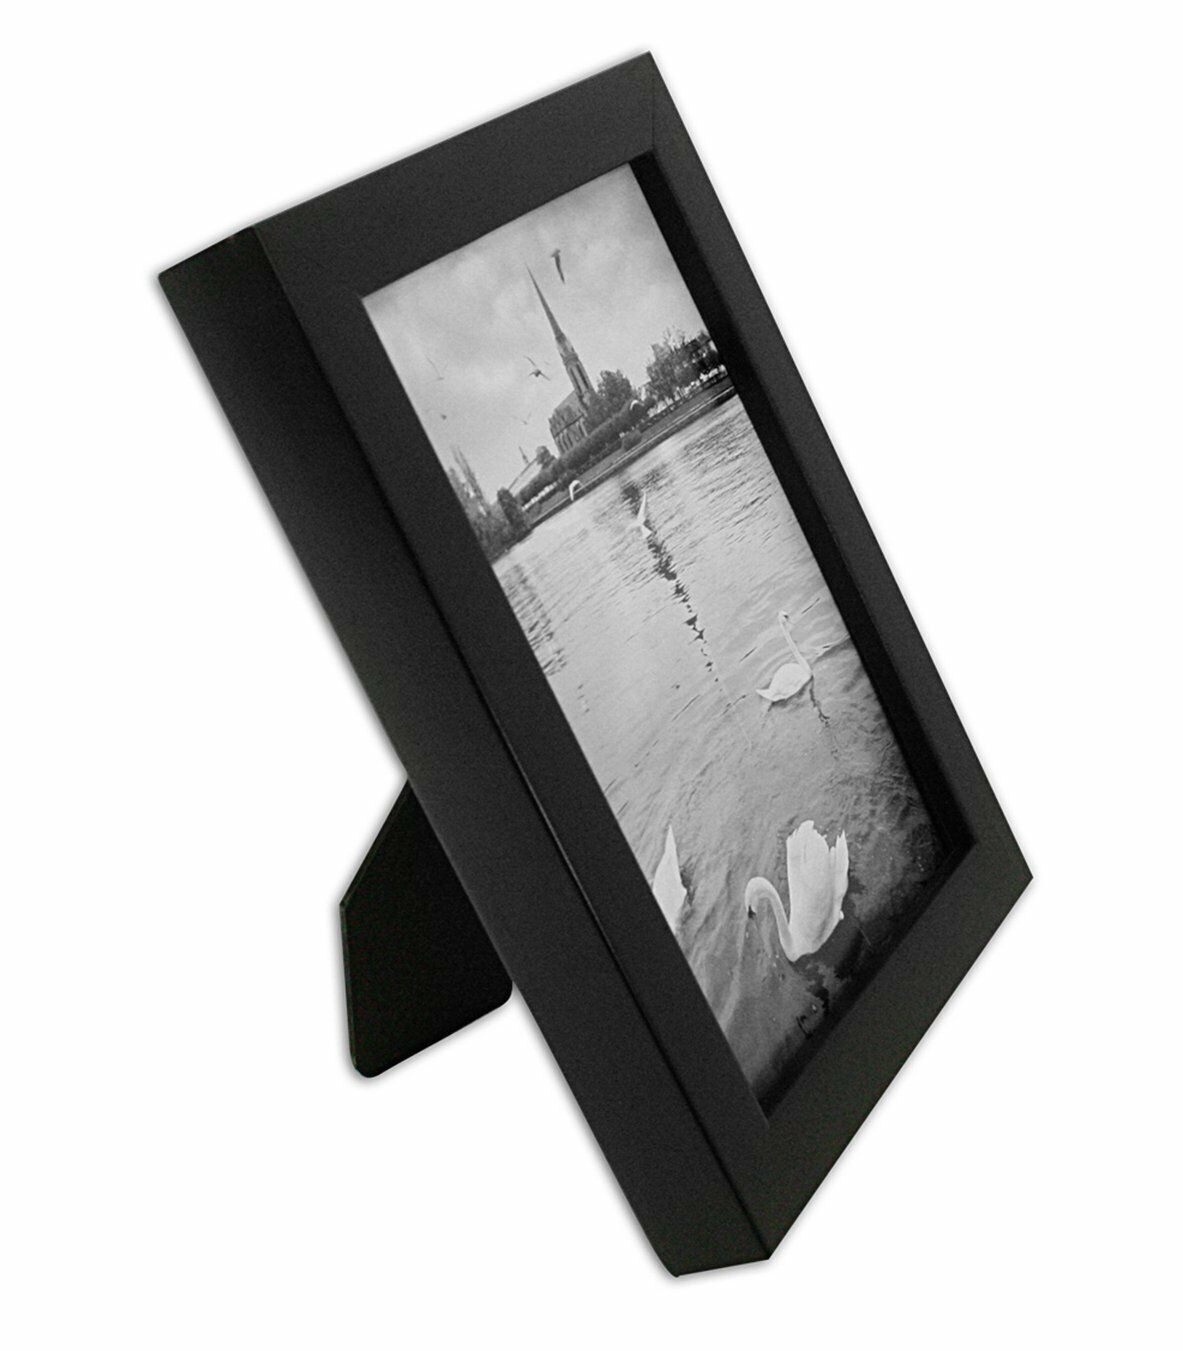 Golden State Art 8x10 Ebony Black Color Wood Swan Photo Frame With ...